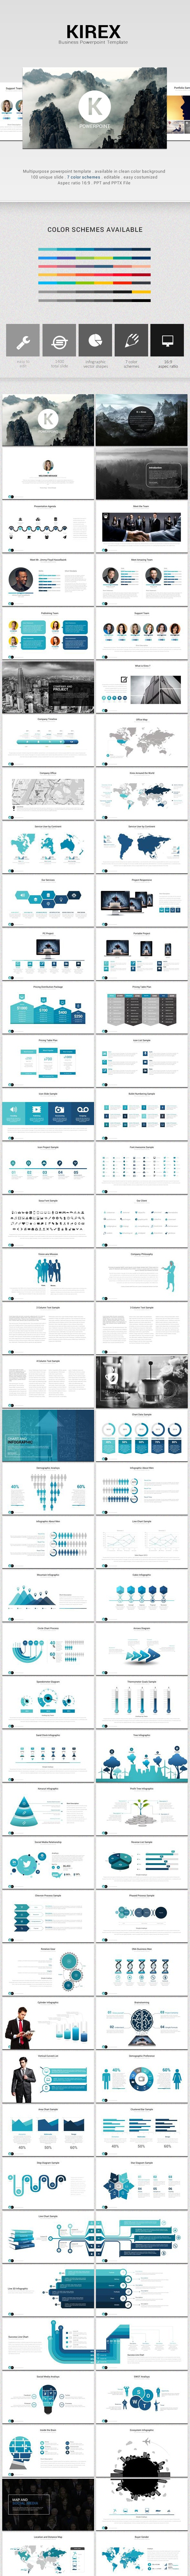 Kirex Business Powerpoint - Business PowerPoint Templates